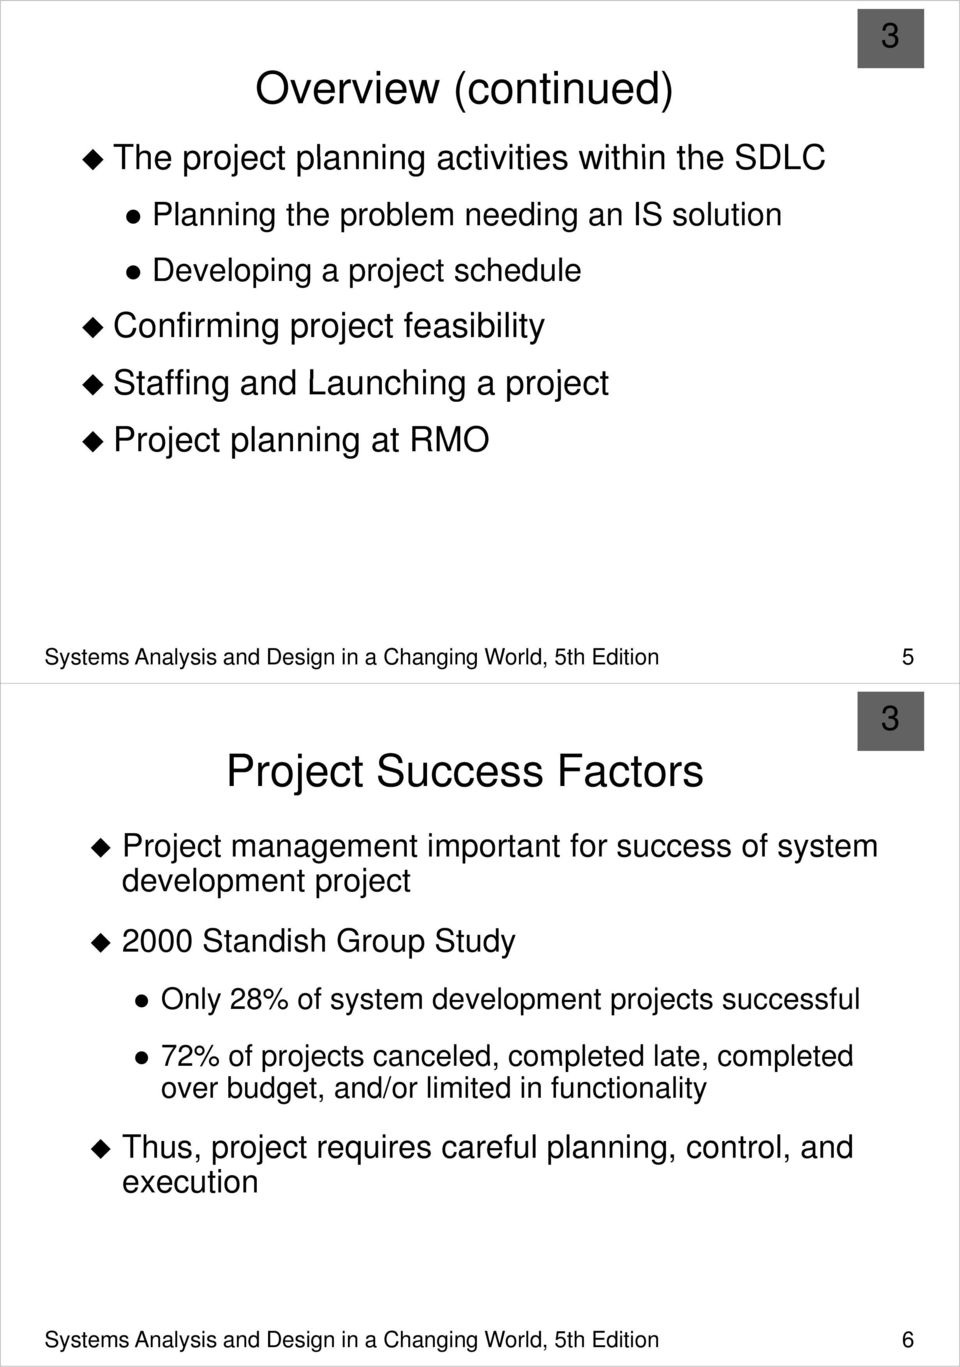 for success of system stem development project 2000 Standish Group Study Only 28% of system development projects successful 72% of projects canceled, completed late,